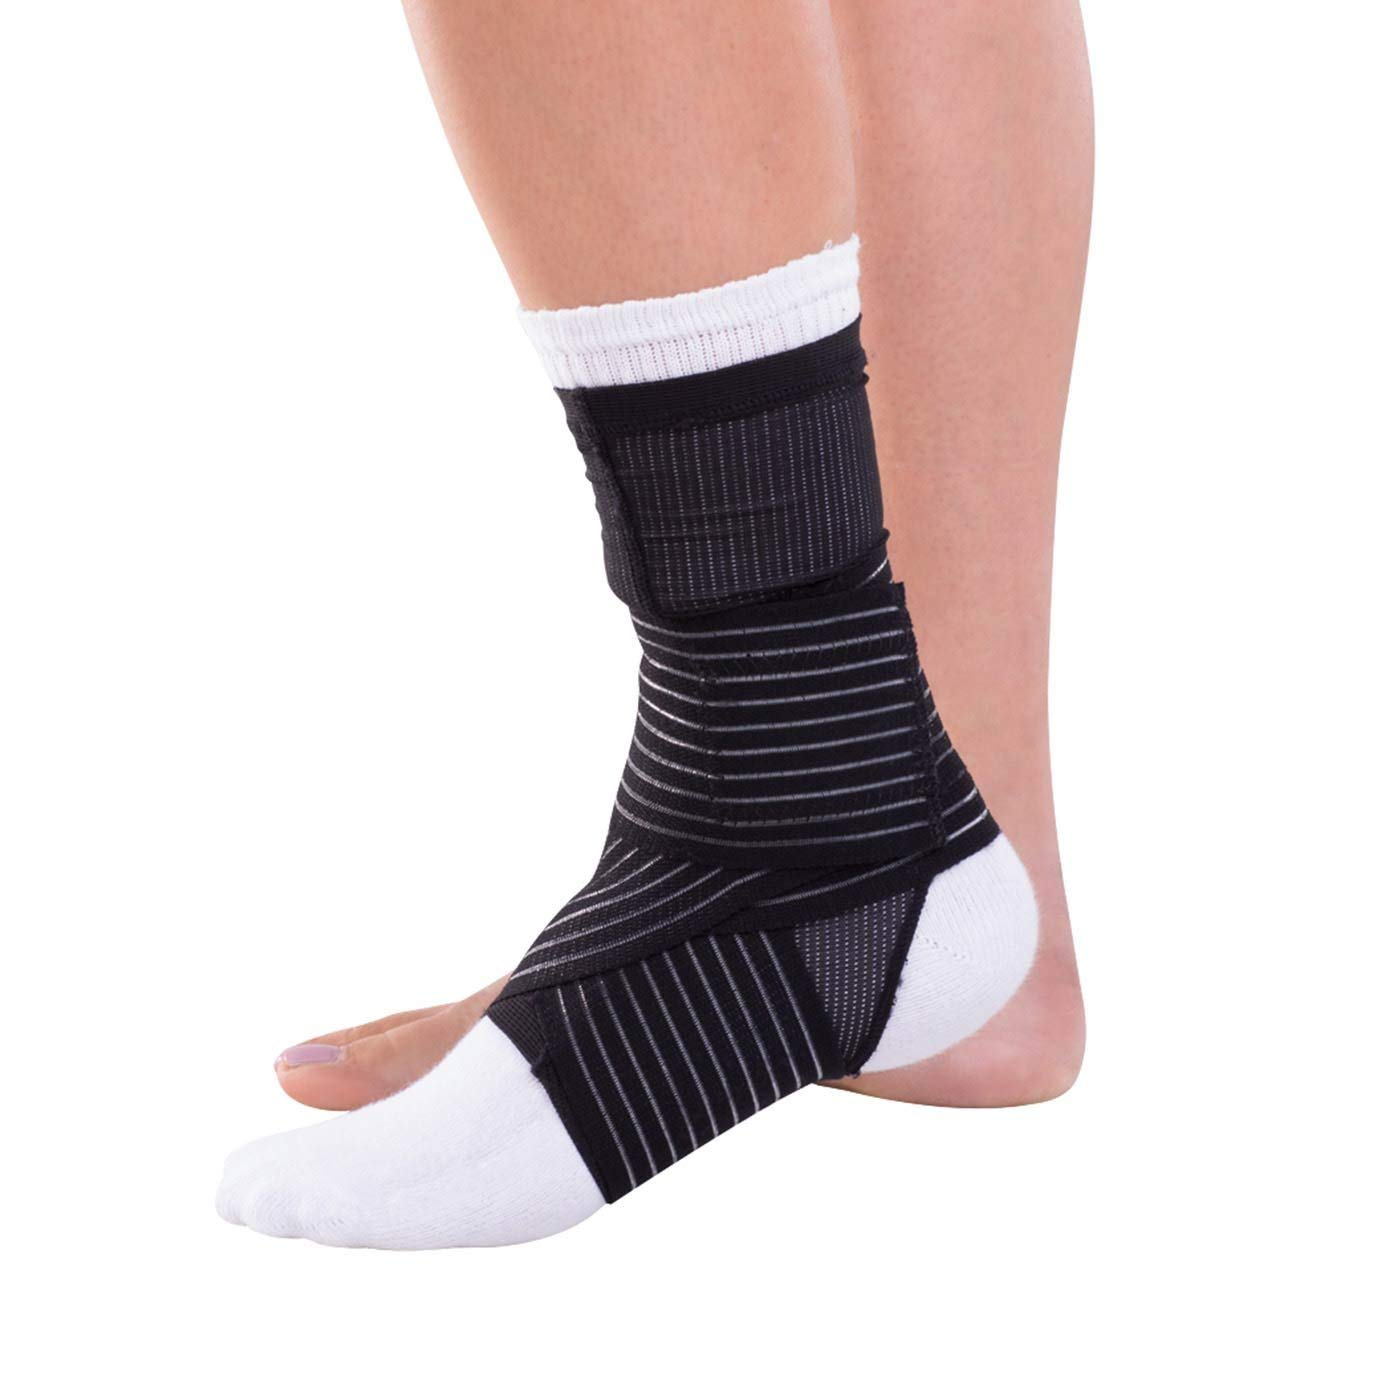 1383397e1b8 Get Quotations · DonJoy Advantage DA161AV03-BLK-XL Ankle Sleeve with Figure  8 Straps for Sprains